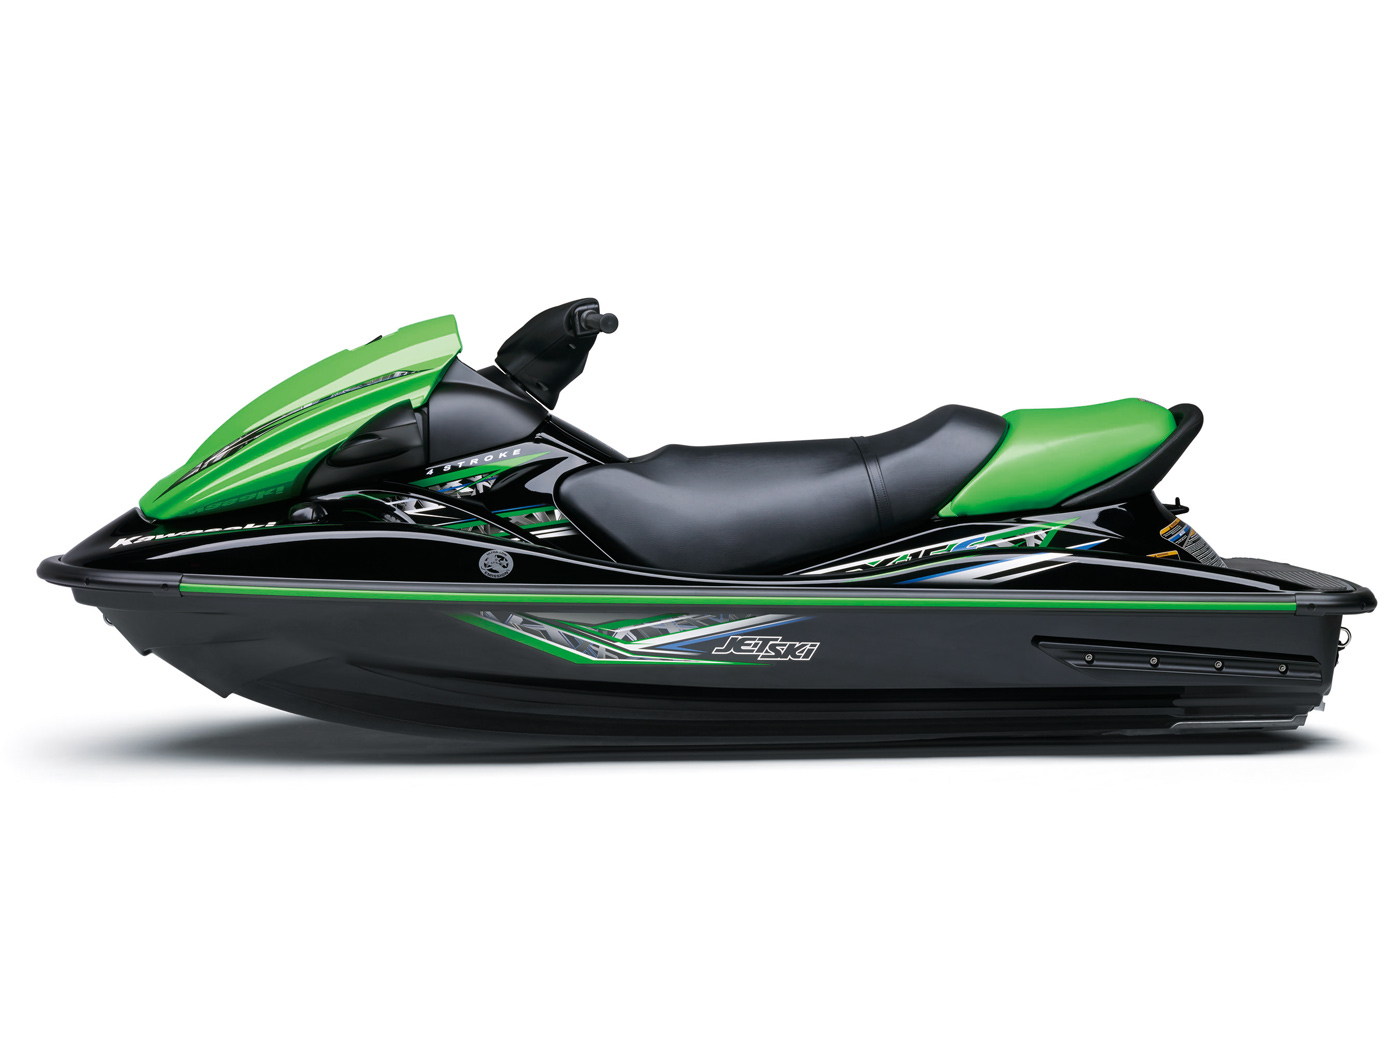 kawasaki 2014 jet ski stx 15f jt1500aef on wheels. Black Bedroom Furniture Sets. Home Design Ideas